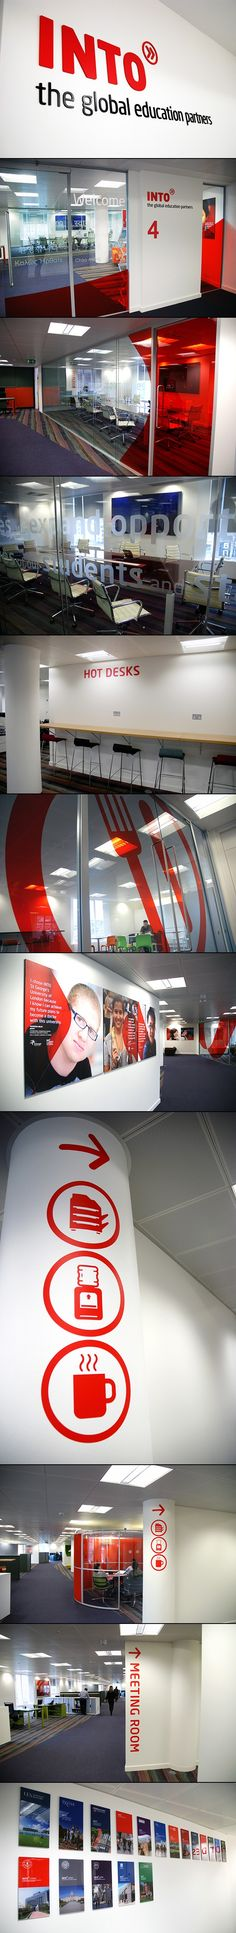 INTO Head Office branding and signage | by Richard Wise - created via http://pinthemall.net